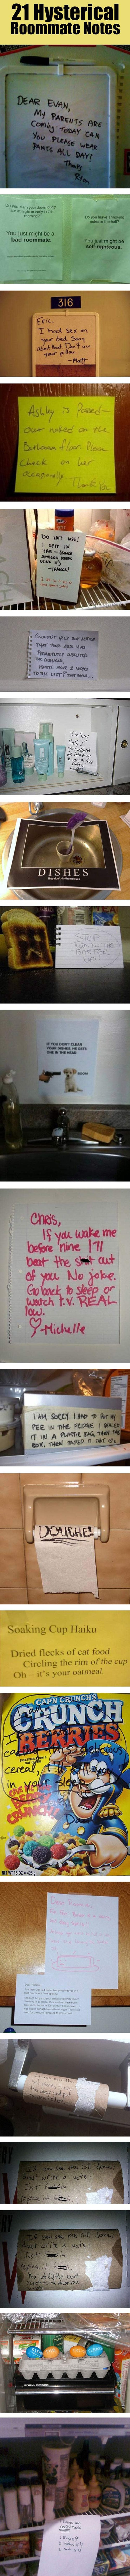 Funny Roommate Notes - 21 Pics